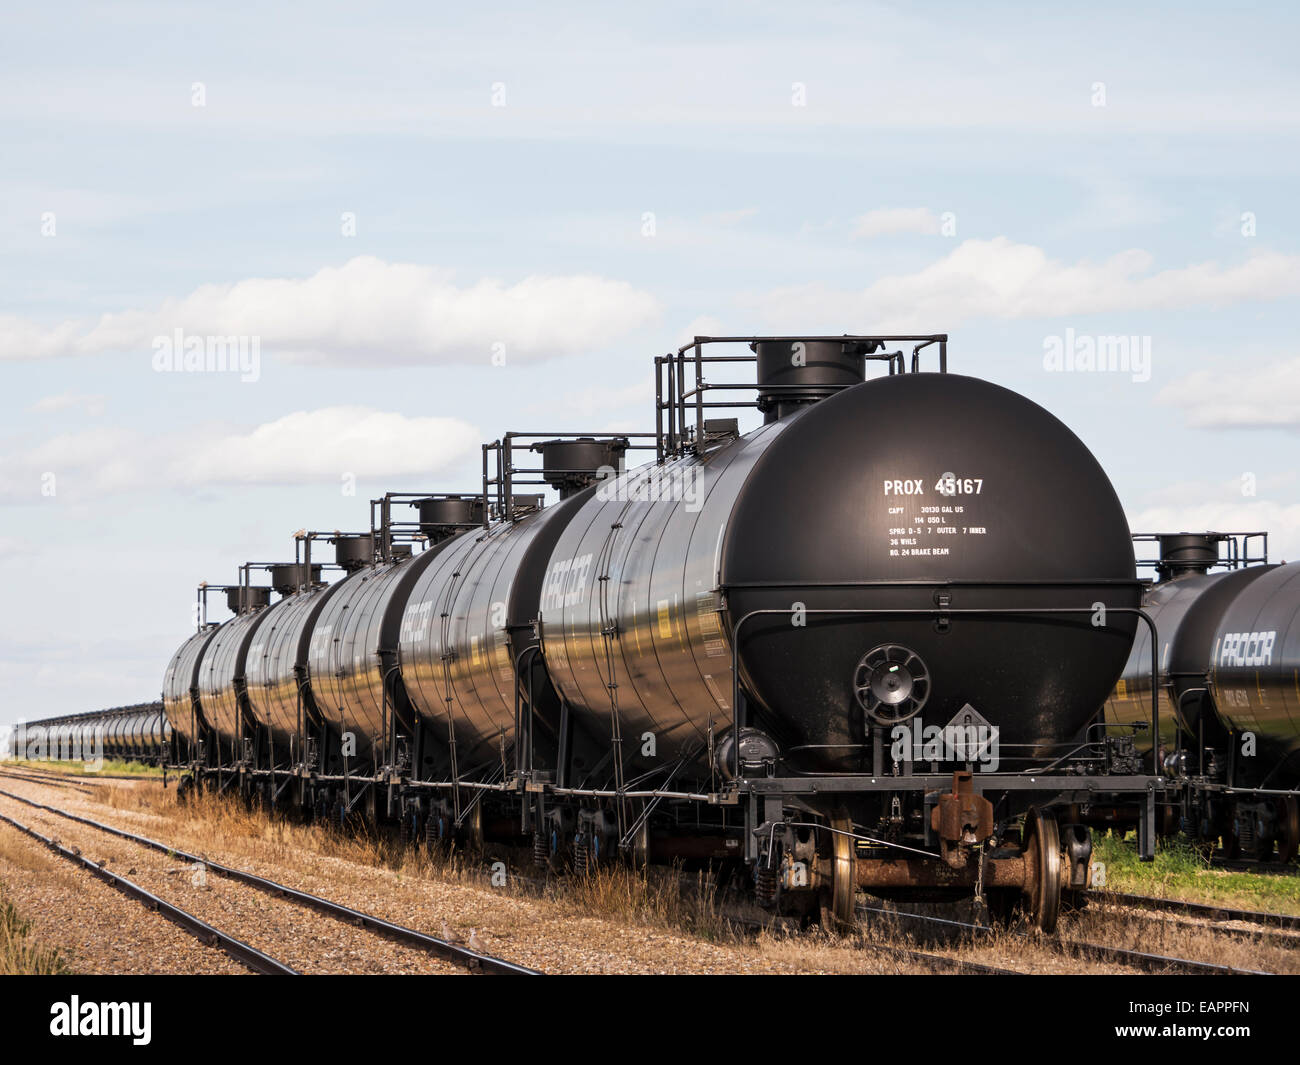 Railway Tanker Cars Used To Transport Liquid And Gaseous